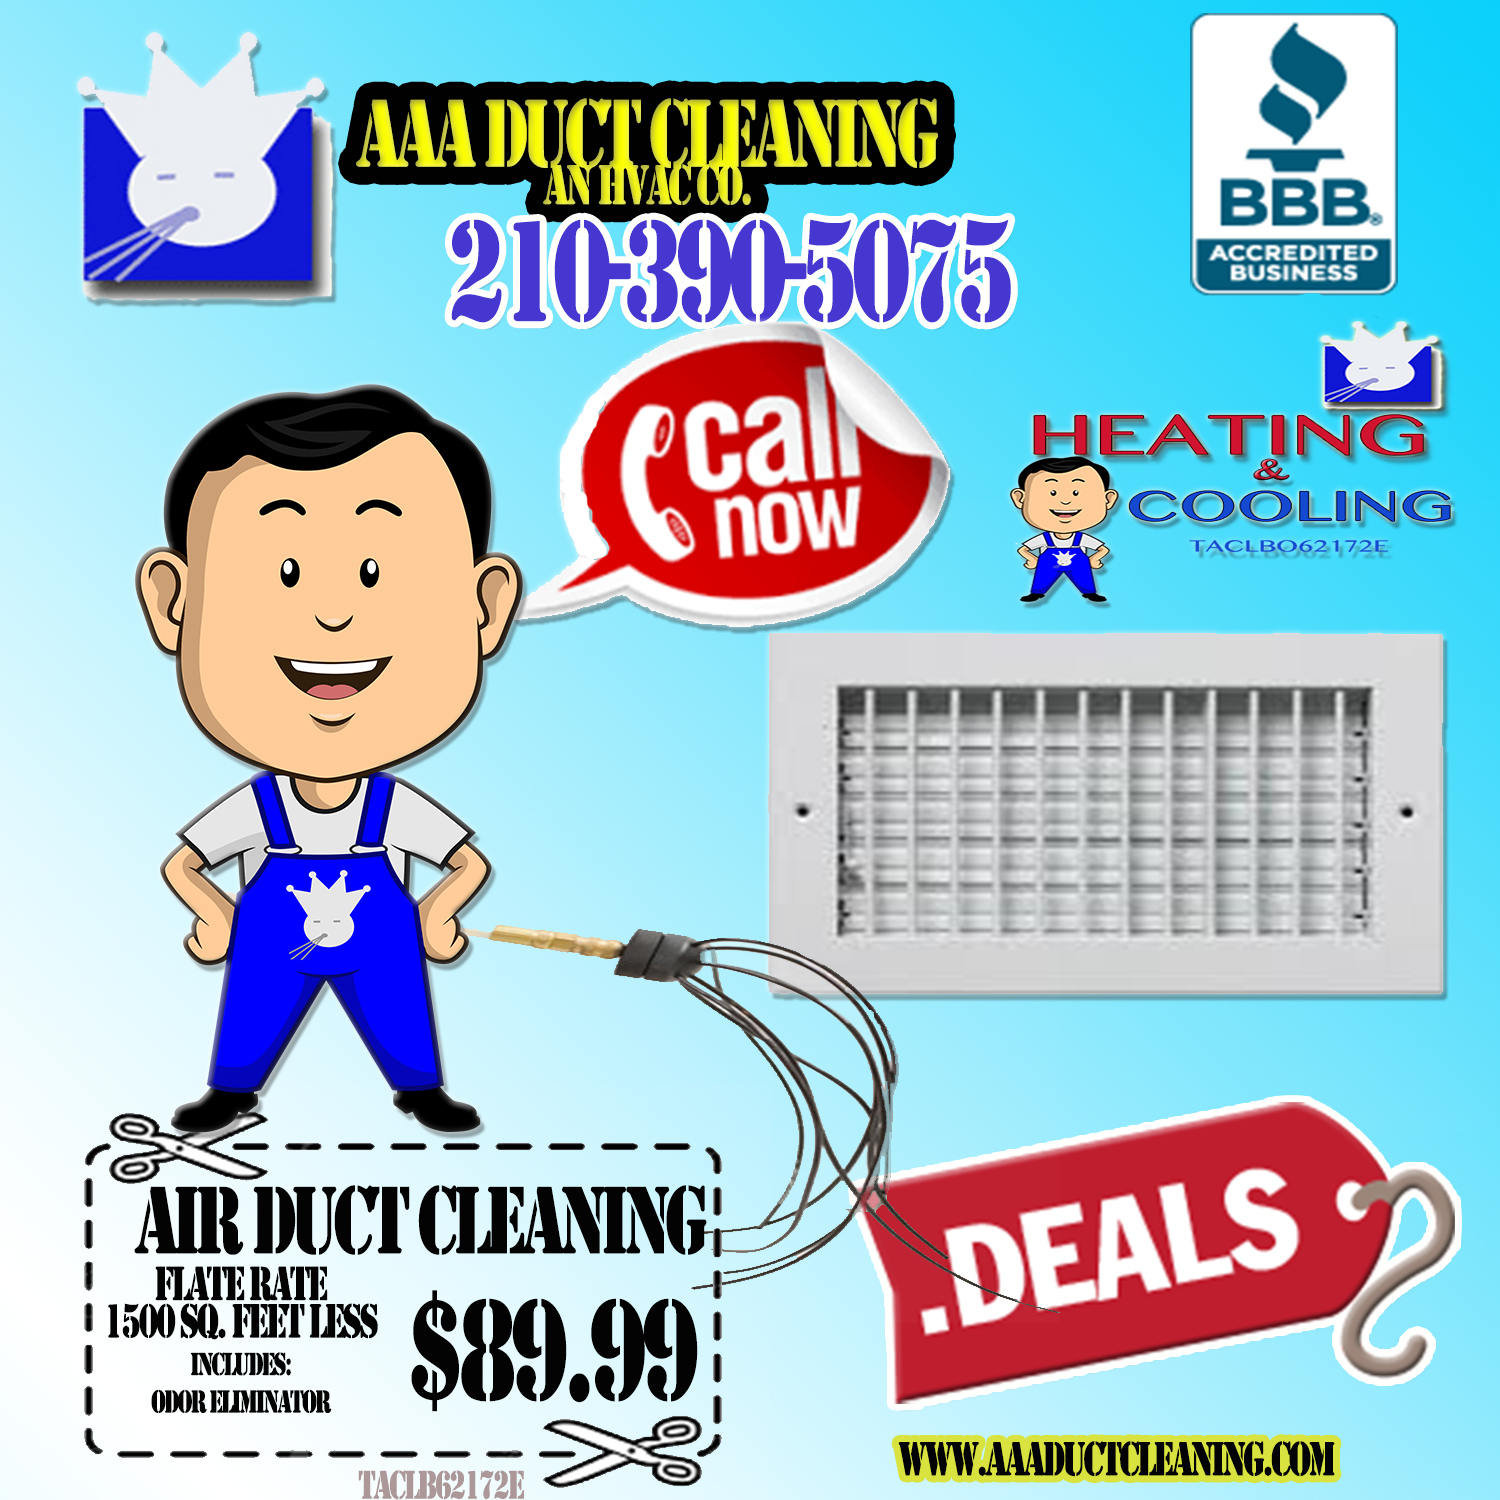 AAA Duct Cleaning Our sponsors San Antonio http